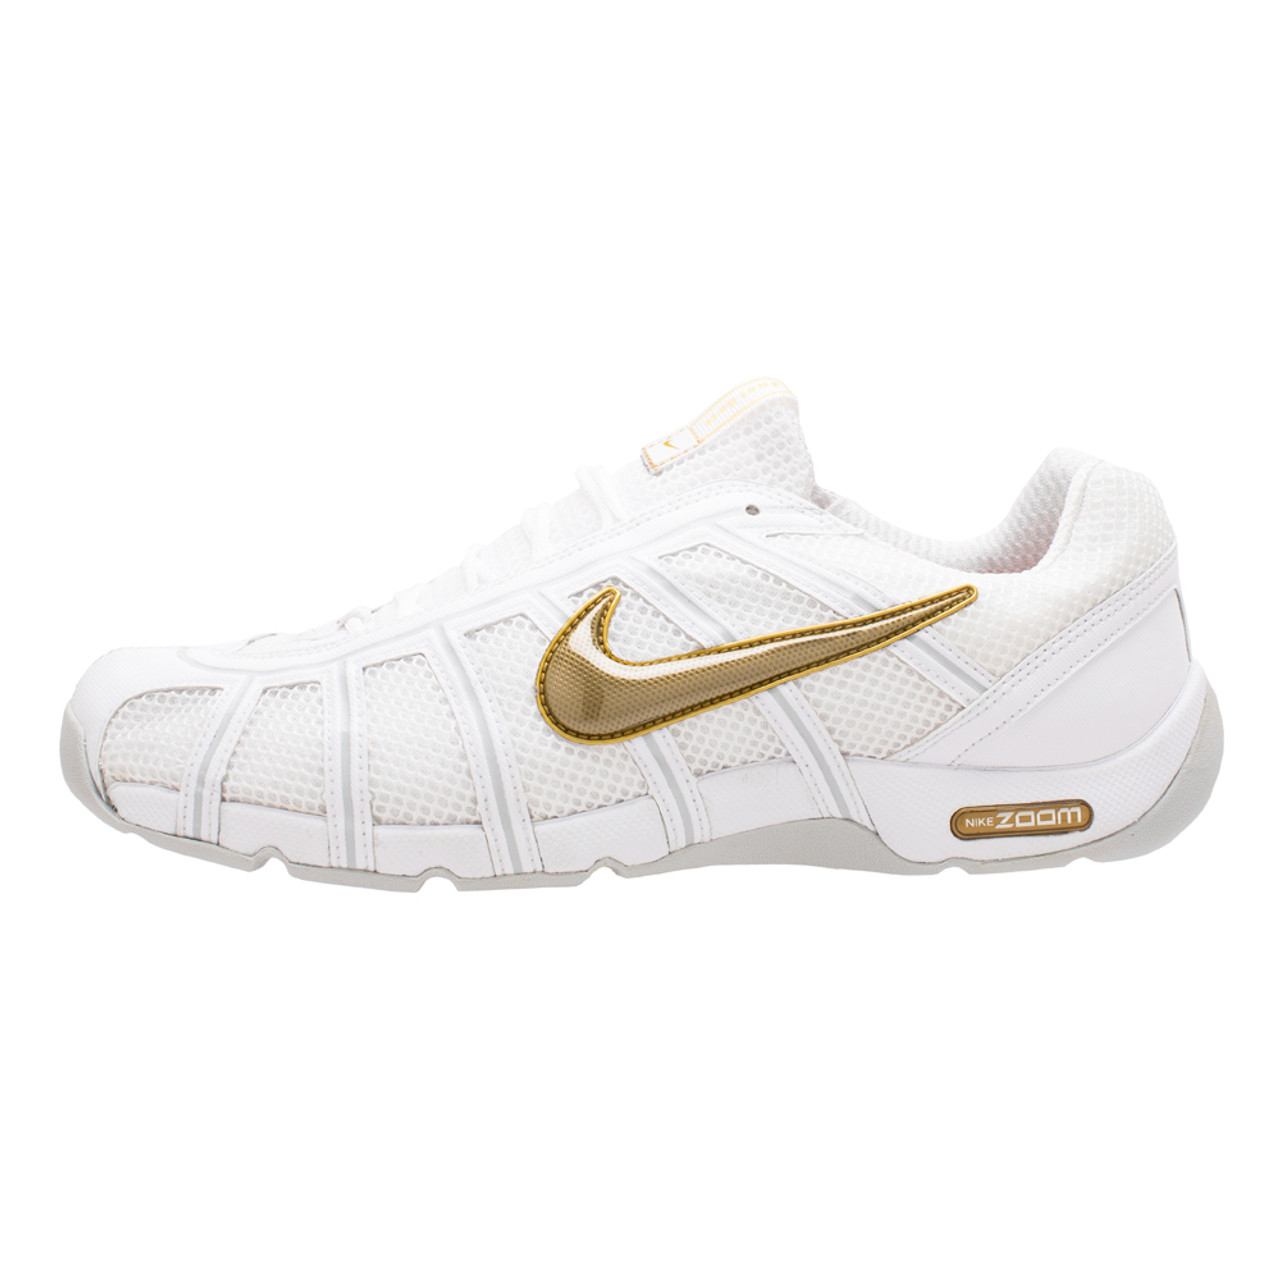 Nike Air Zoom Fencer Limited Edition White Metallic Gold